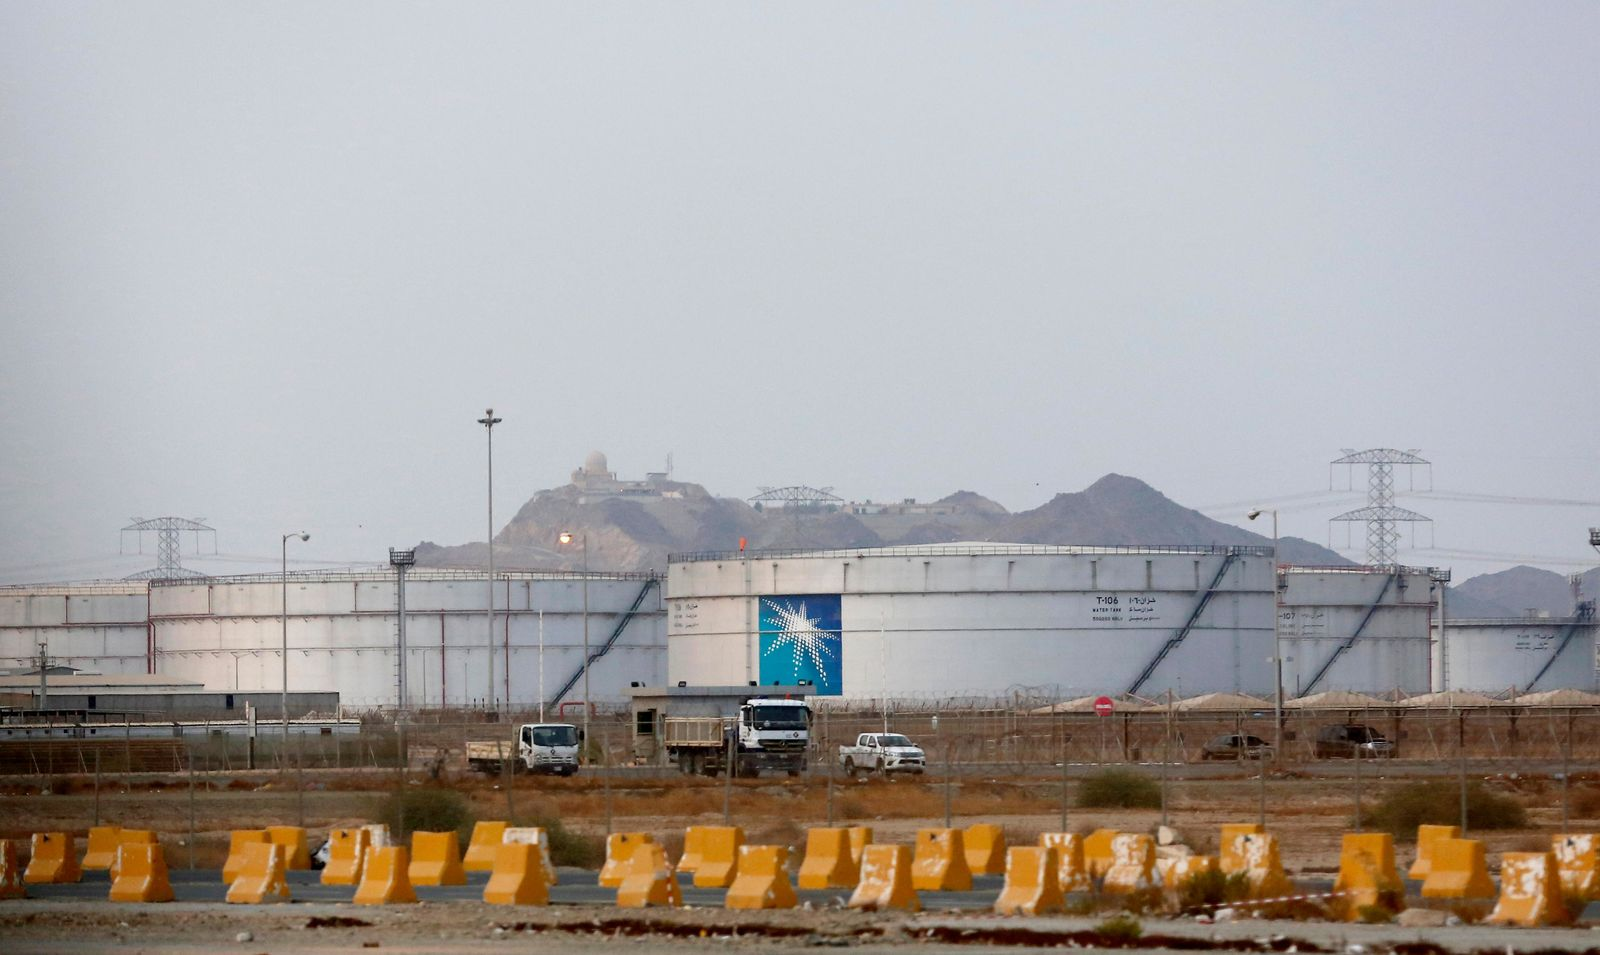 Storage tanks are seen at the North Jiddah bulk plant, an Aramco oil facility, in Jiddah, Saudi Arabia, Sunday, Sept. 15, 2019.{ } (AP Photo/Amr Nabil)